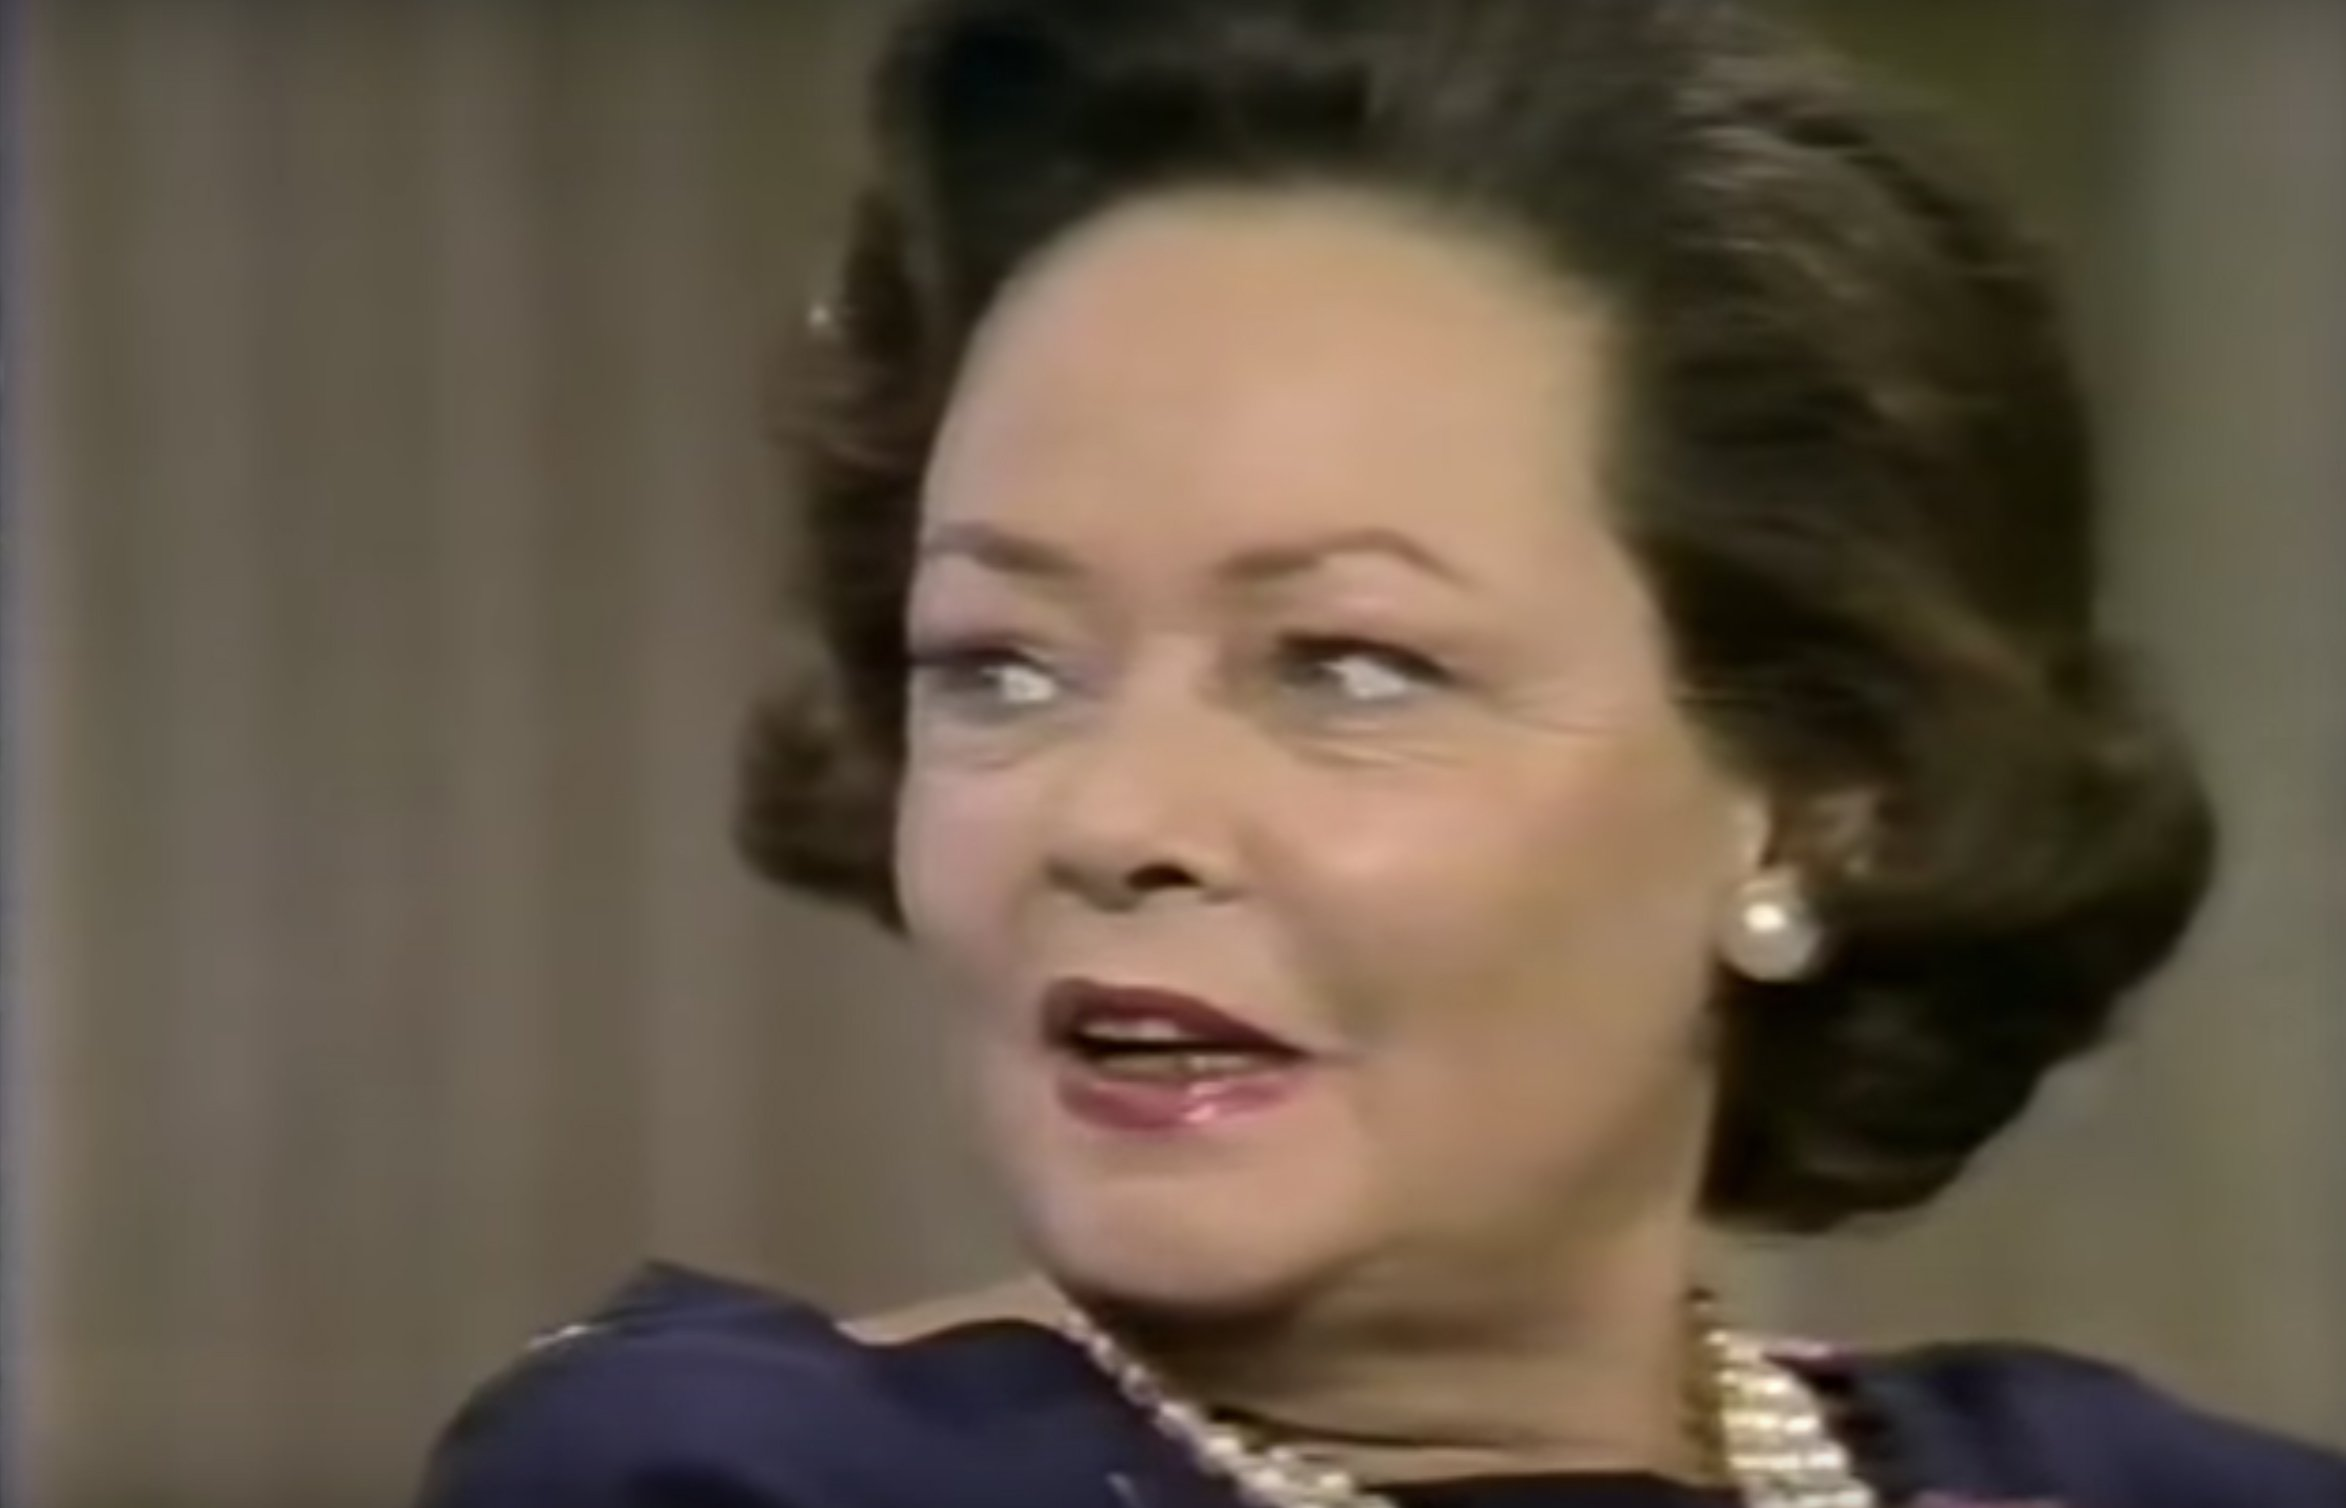 Gene Tierney during an 1979 TV interview. : Source: YouTube/AlanEichler